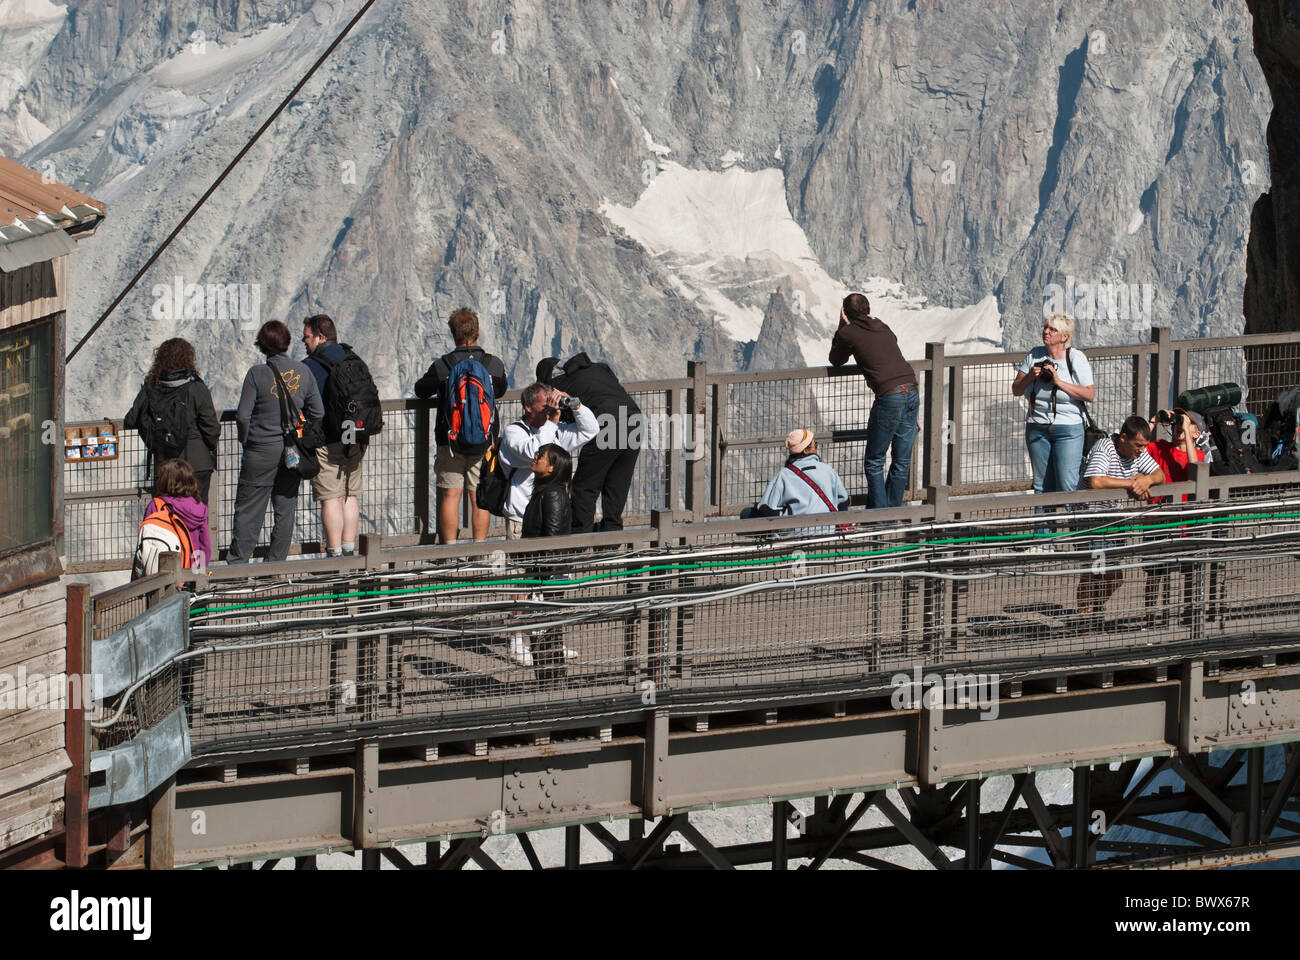 The bridge viewing platform Aiguille du midi cable car station Chamonix, Haute-Savoie, France massif du Mont Blanc. - Stock Image